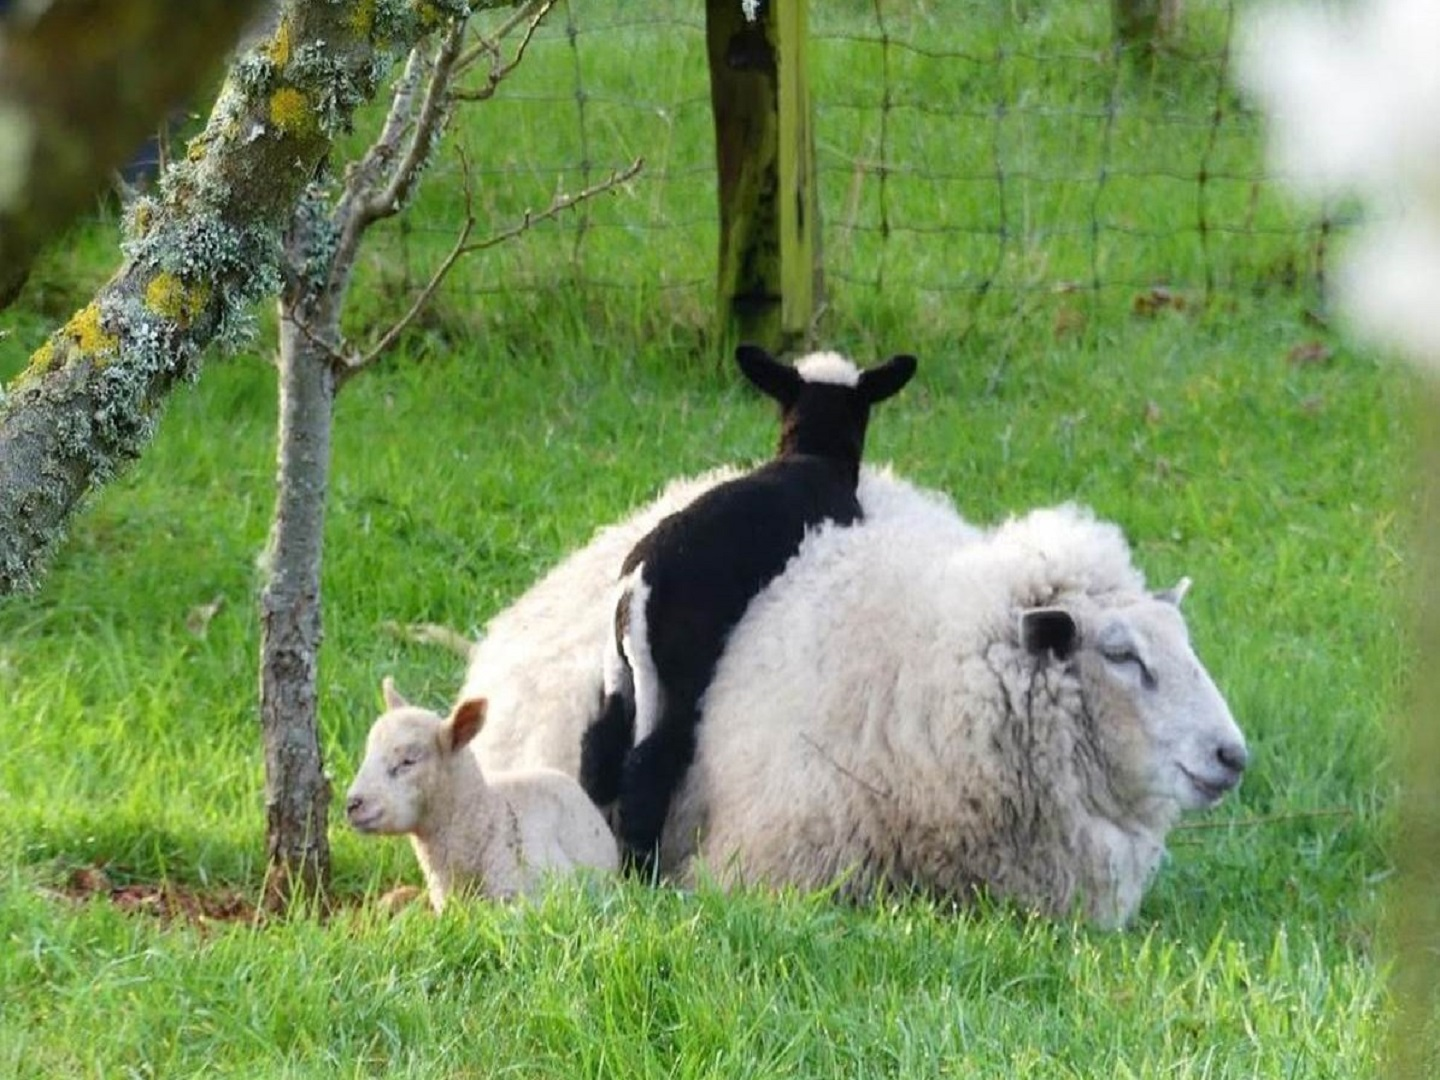 A mother and baby sheep standing on top of a grass covered field at Le Clos de CanaPlaye.